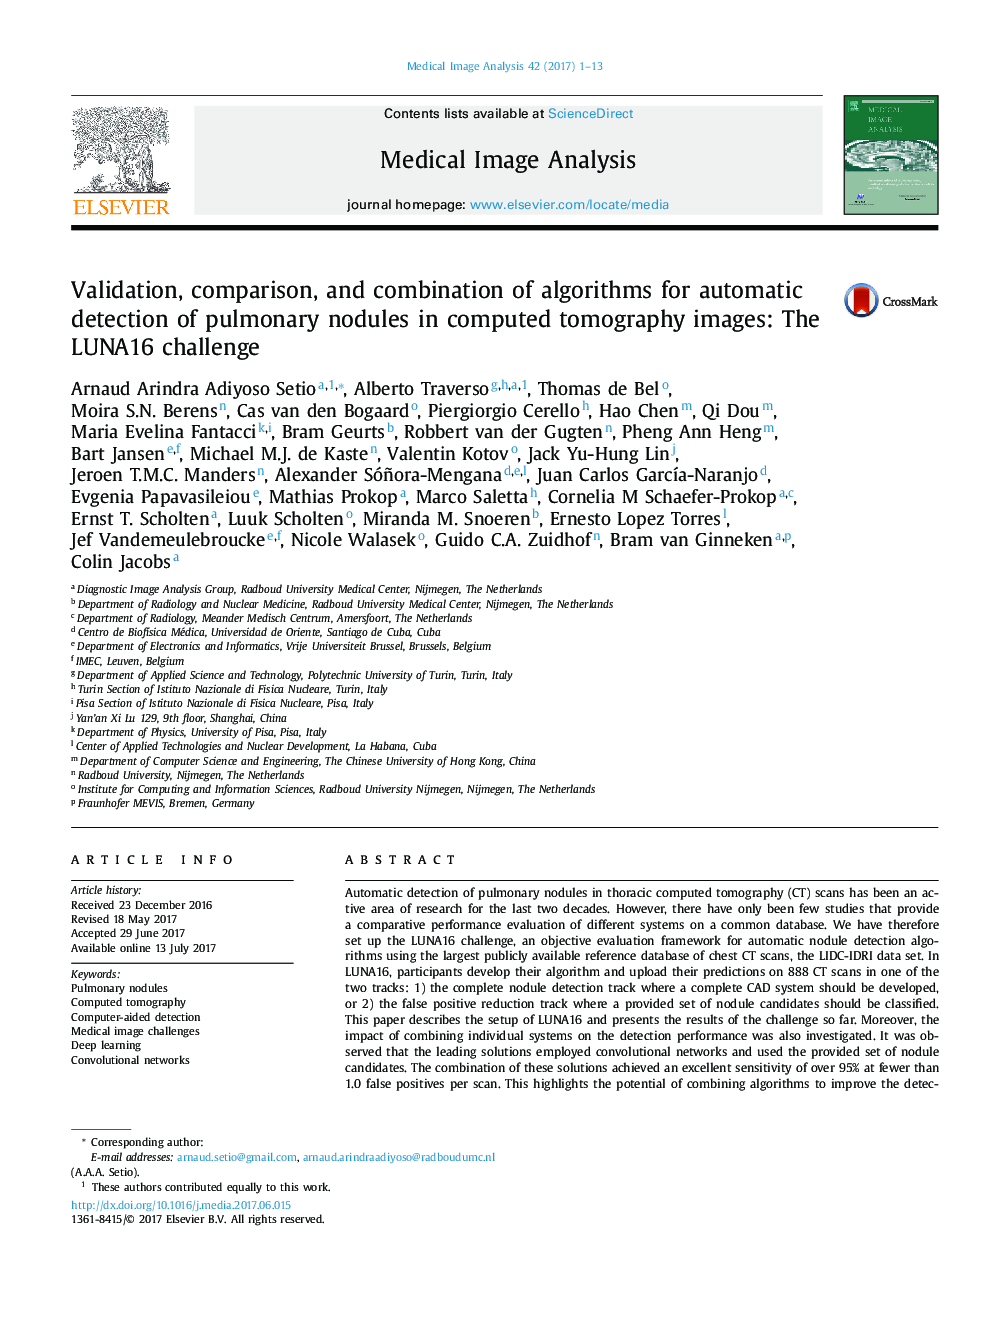 Validation, comparison, and combination of algorithms for automatic detection of pulmonary nodules in computed tomography images: The LUNA16 challenge